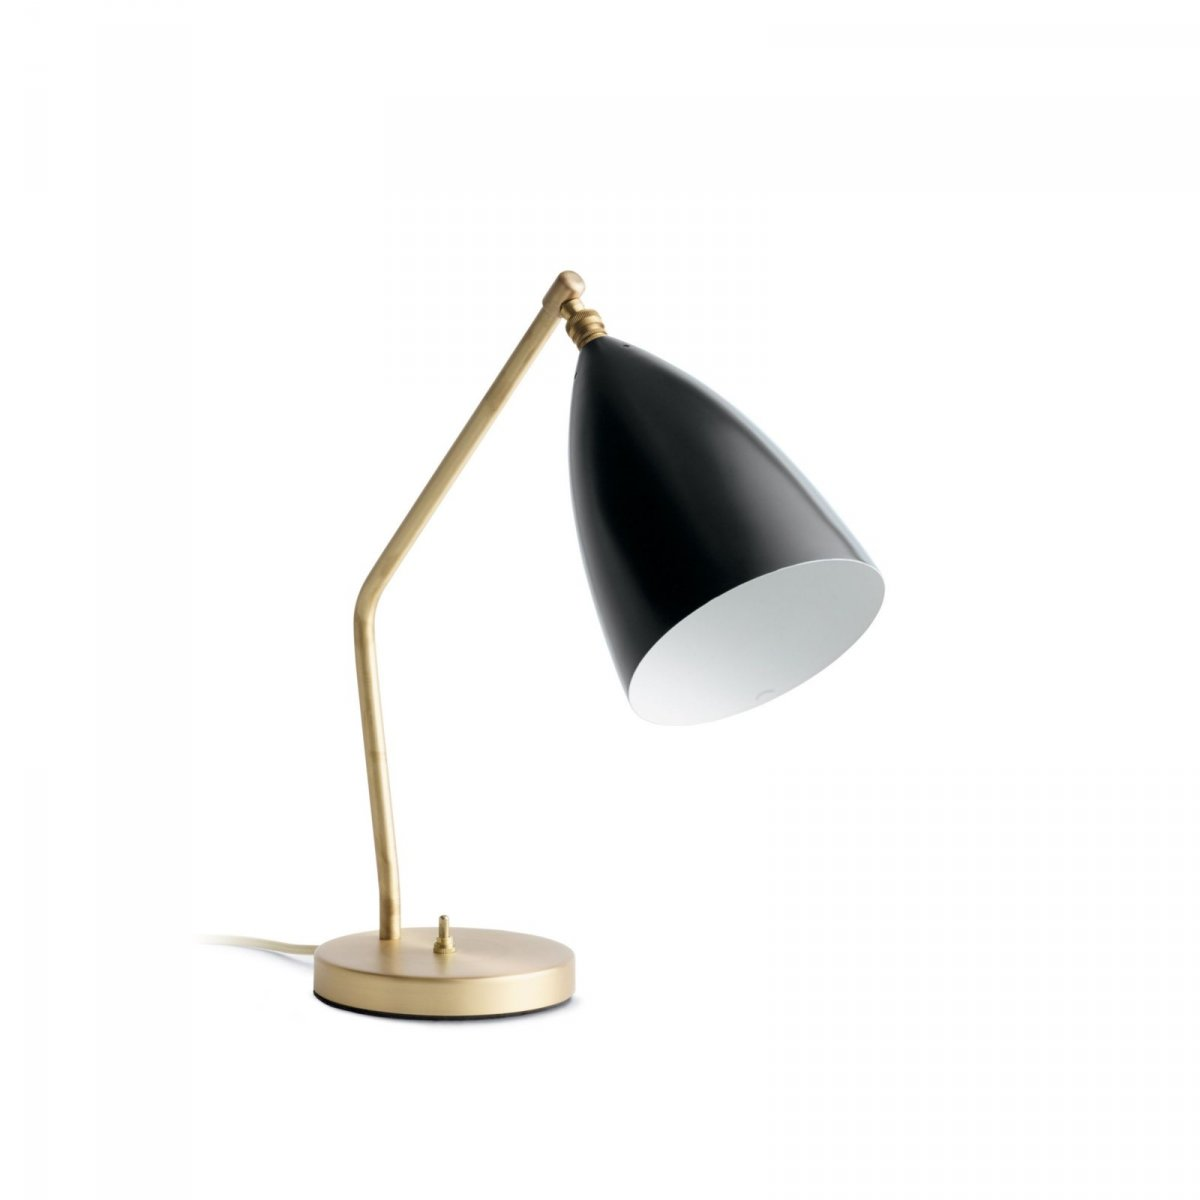 Grossman Gräshoppa Task Table Lamp, jet black.